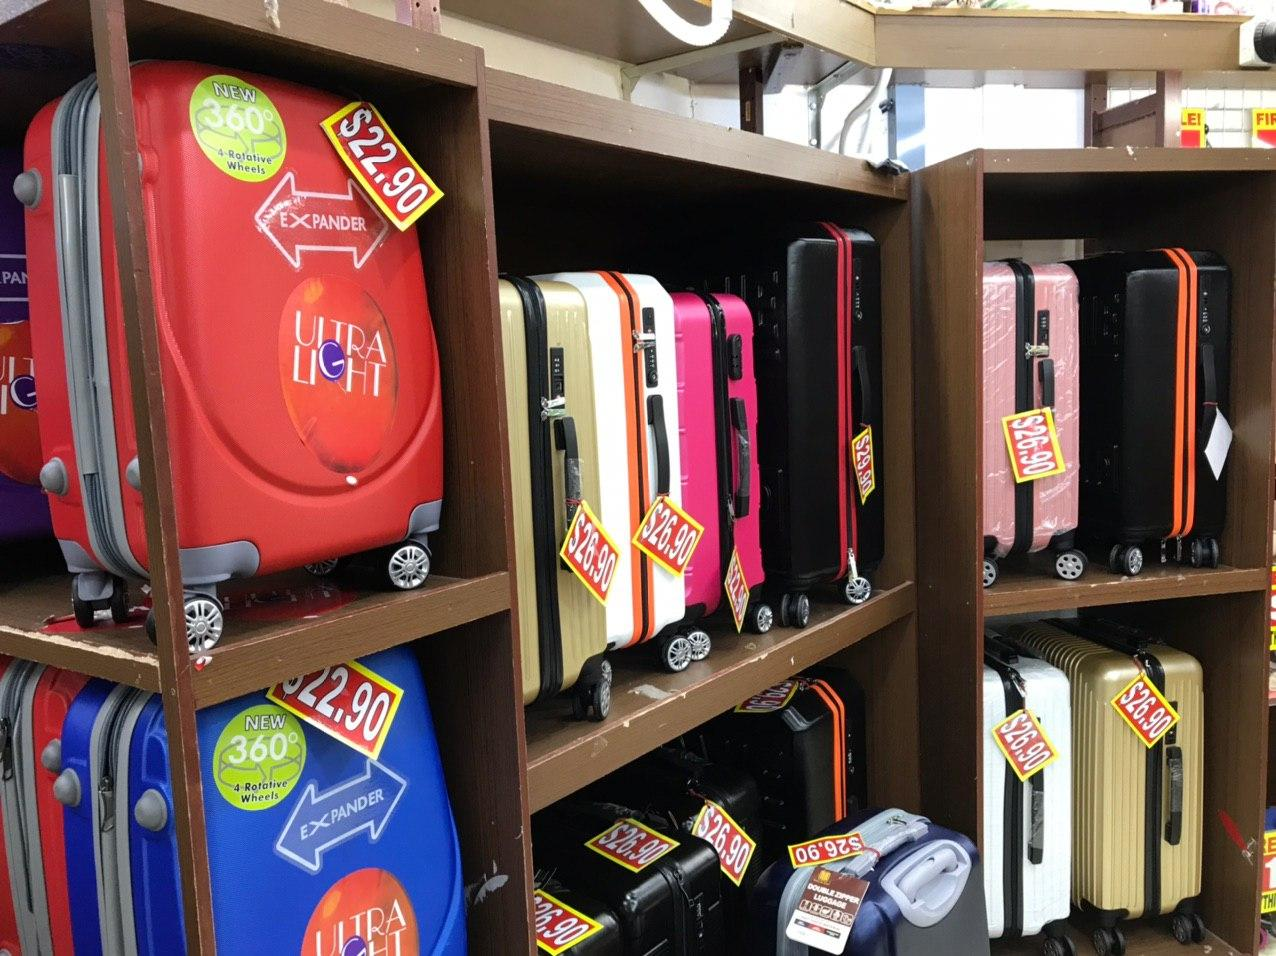 Luggage options at the Value Dollar store.